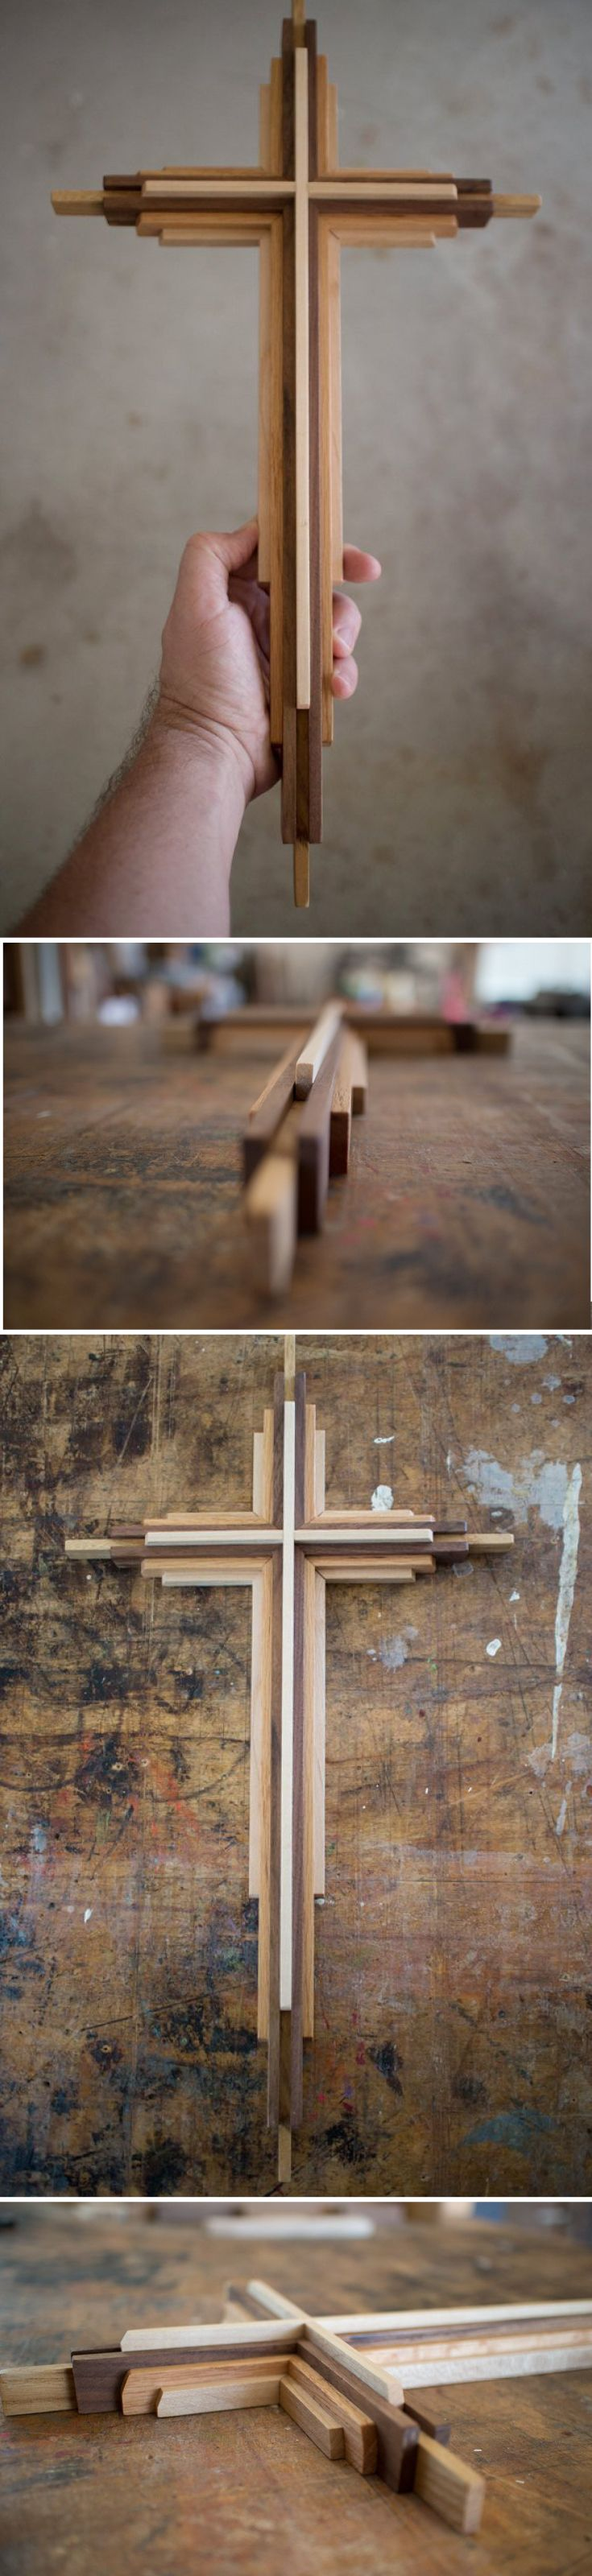 Wood Cross Plans Wooden Thing